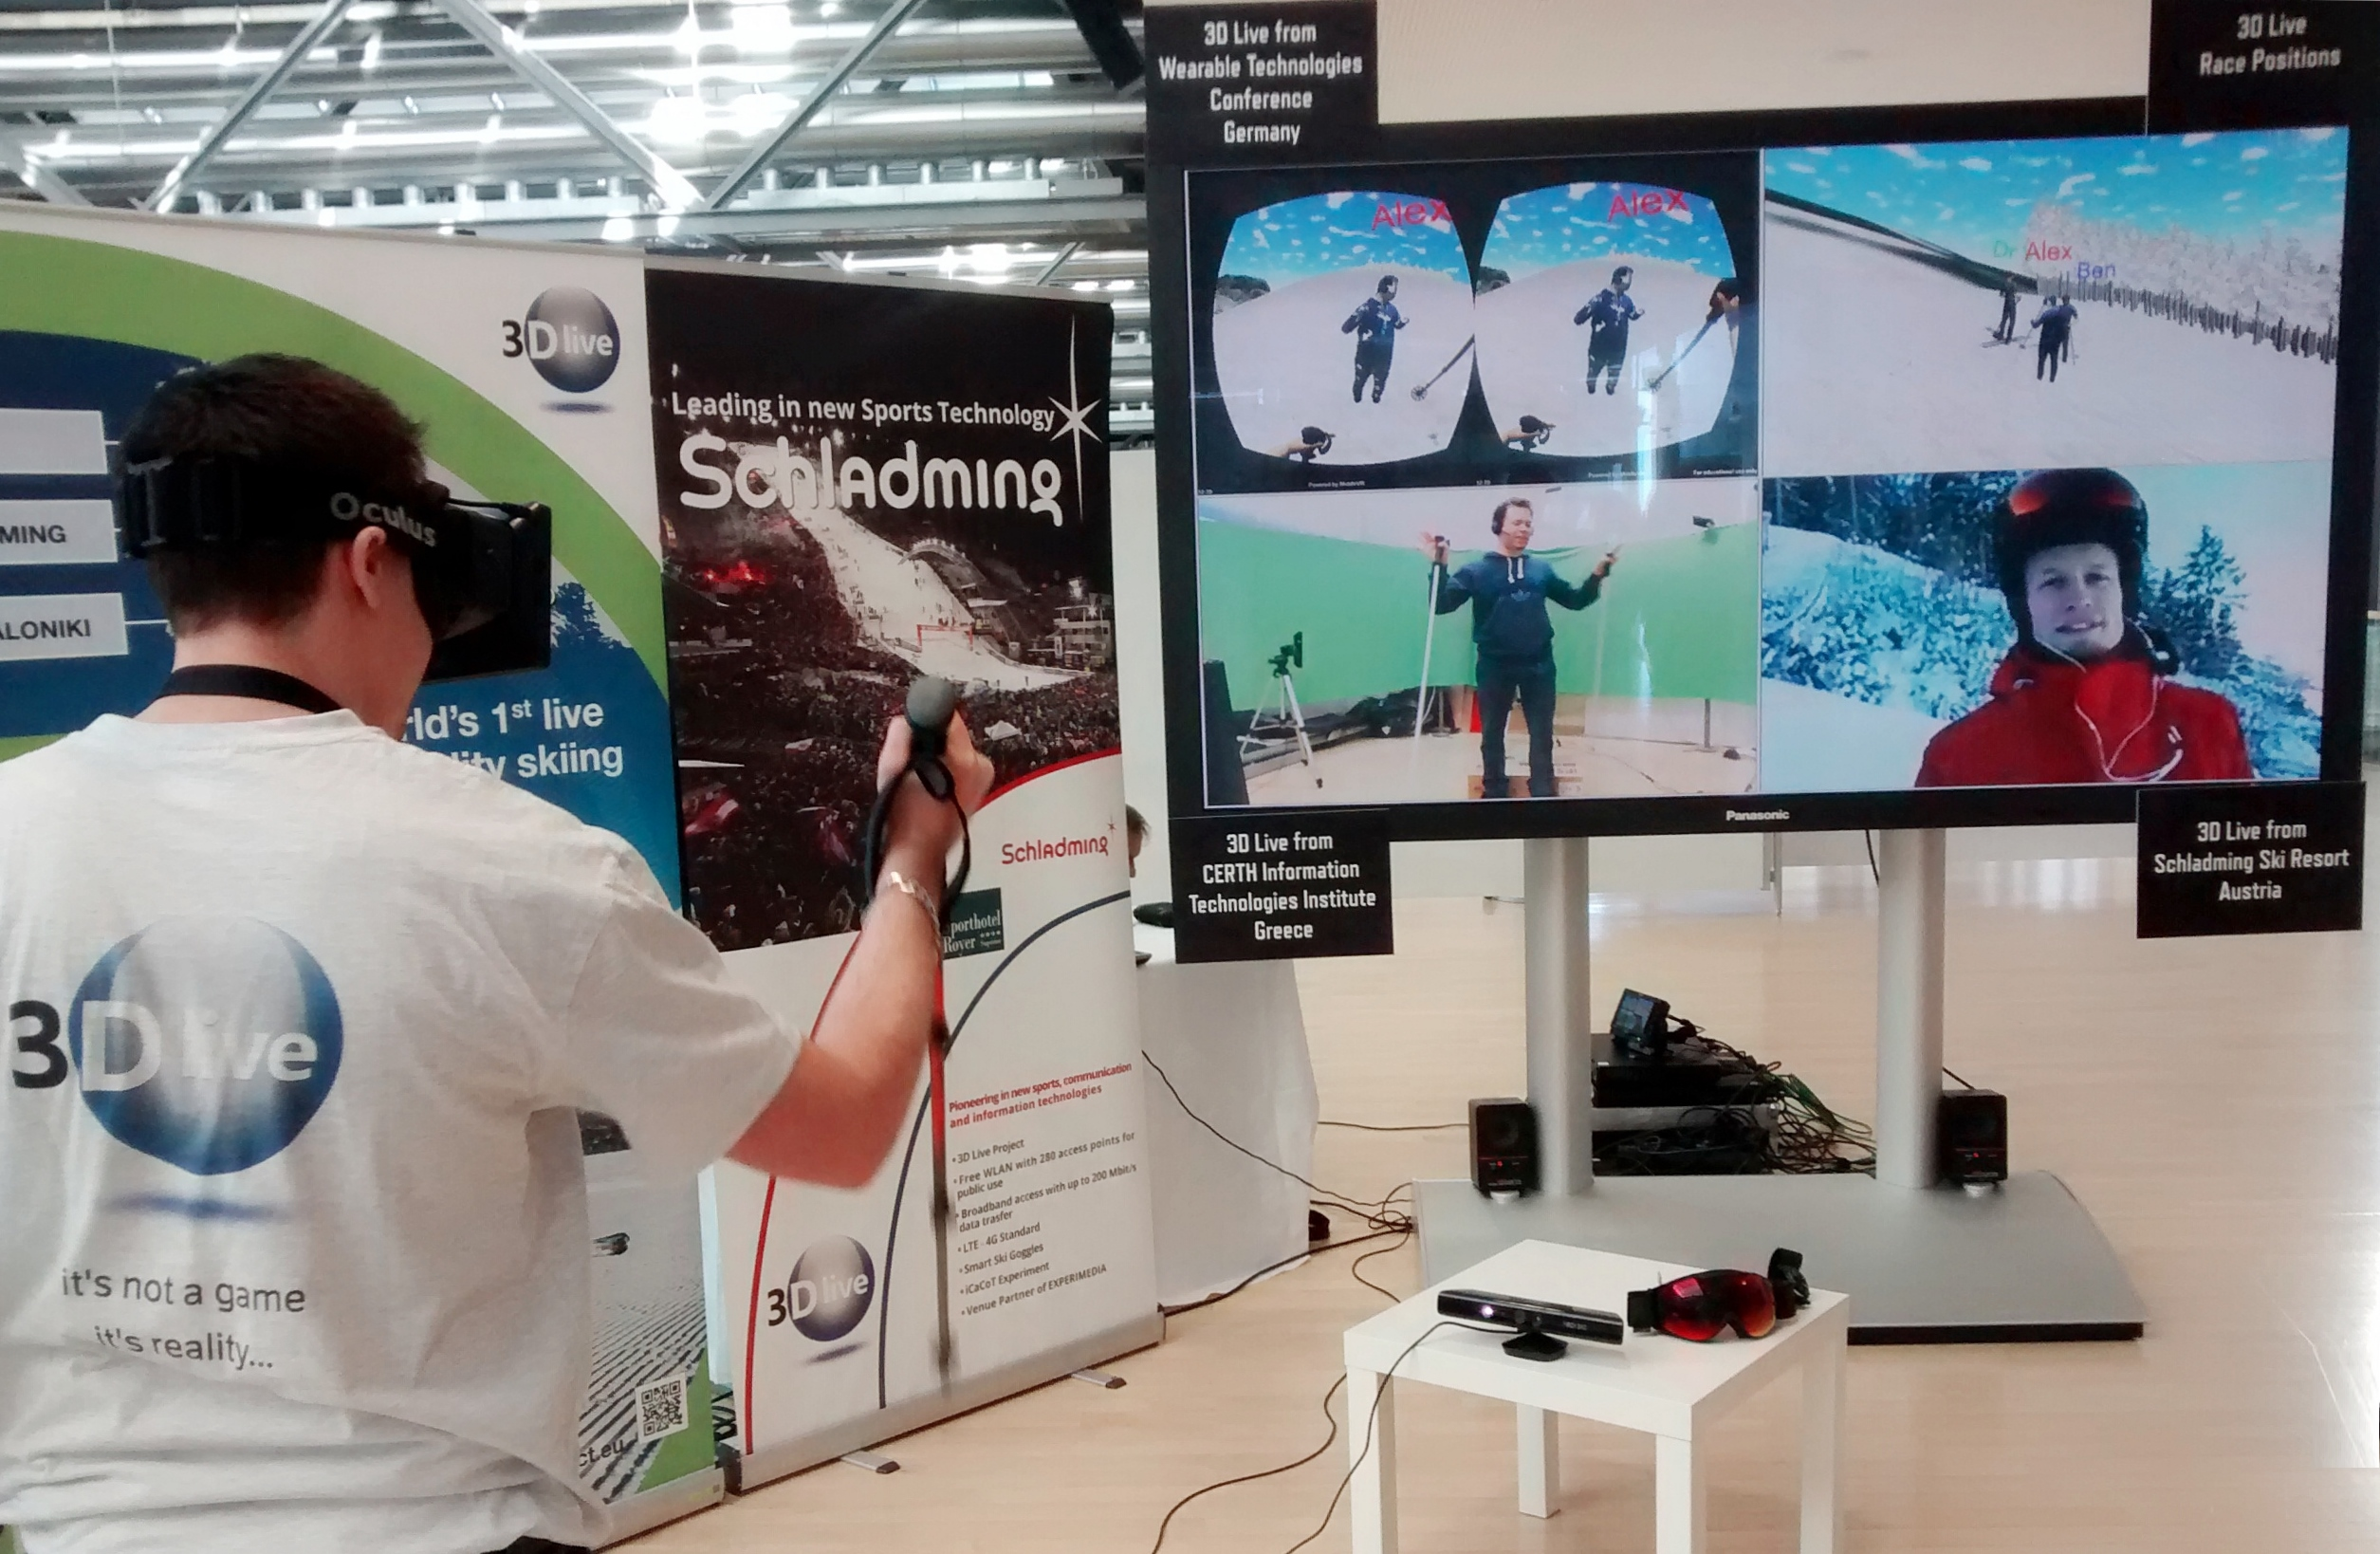 Spotlight: 3DLive and The World's First 'Mixed Reality' Ski Race